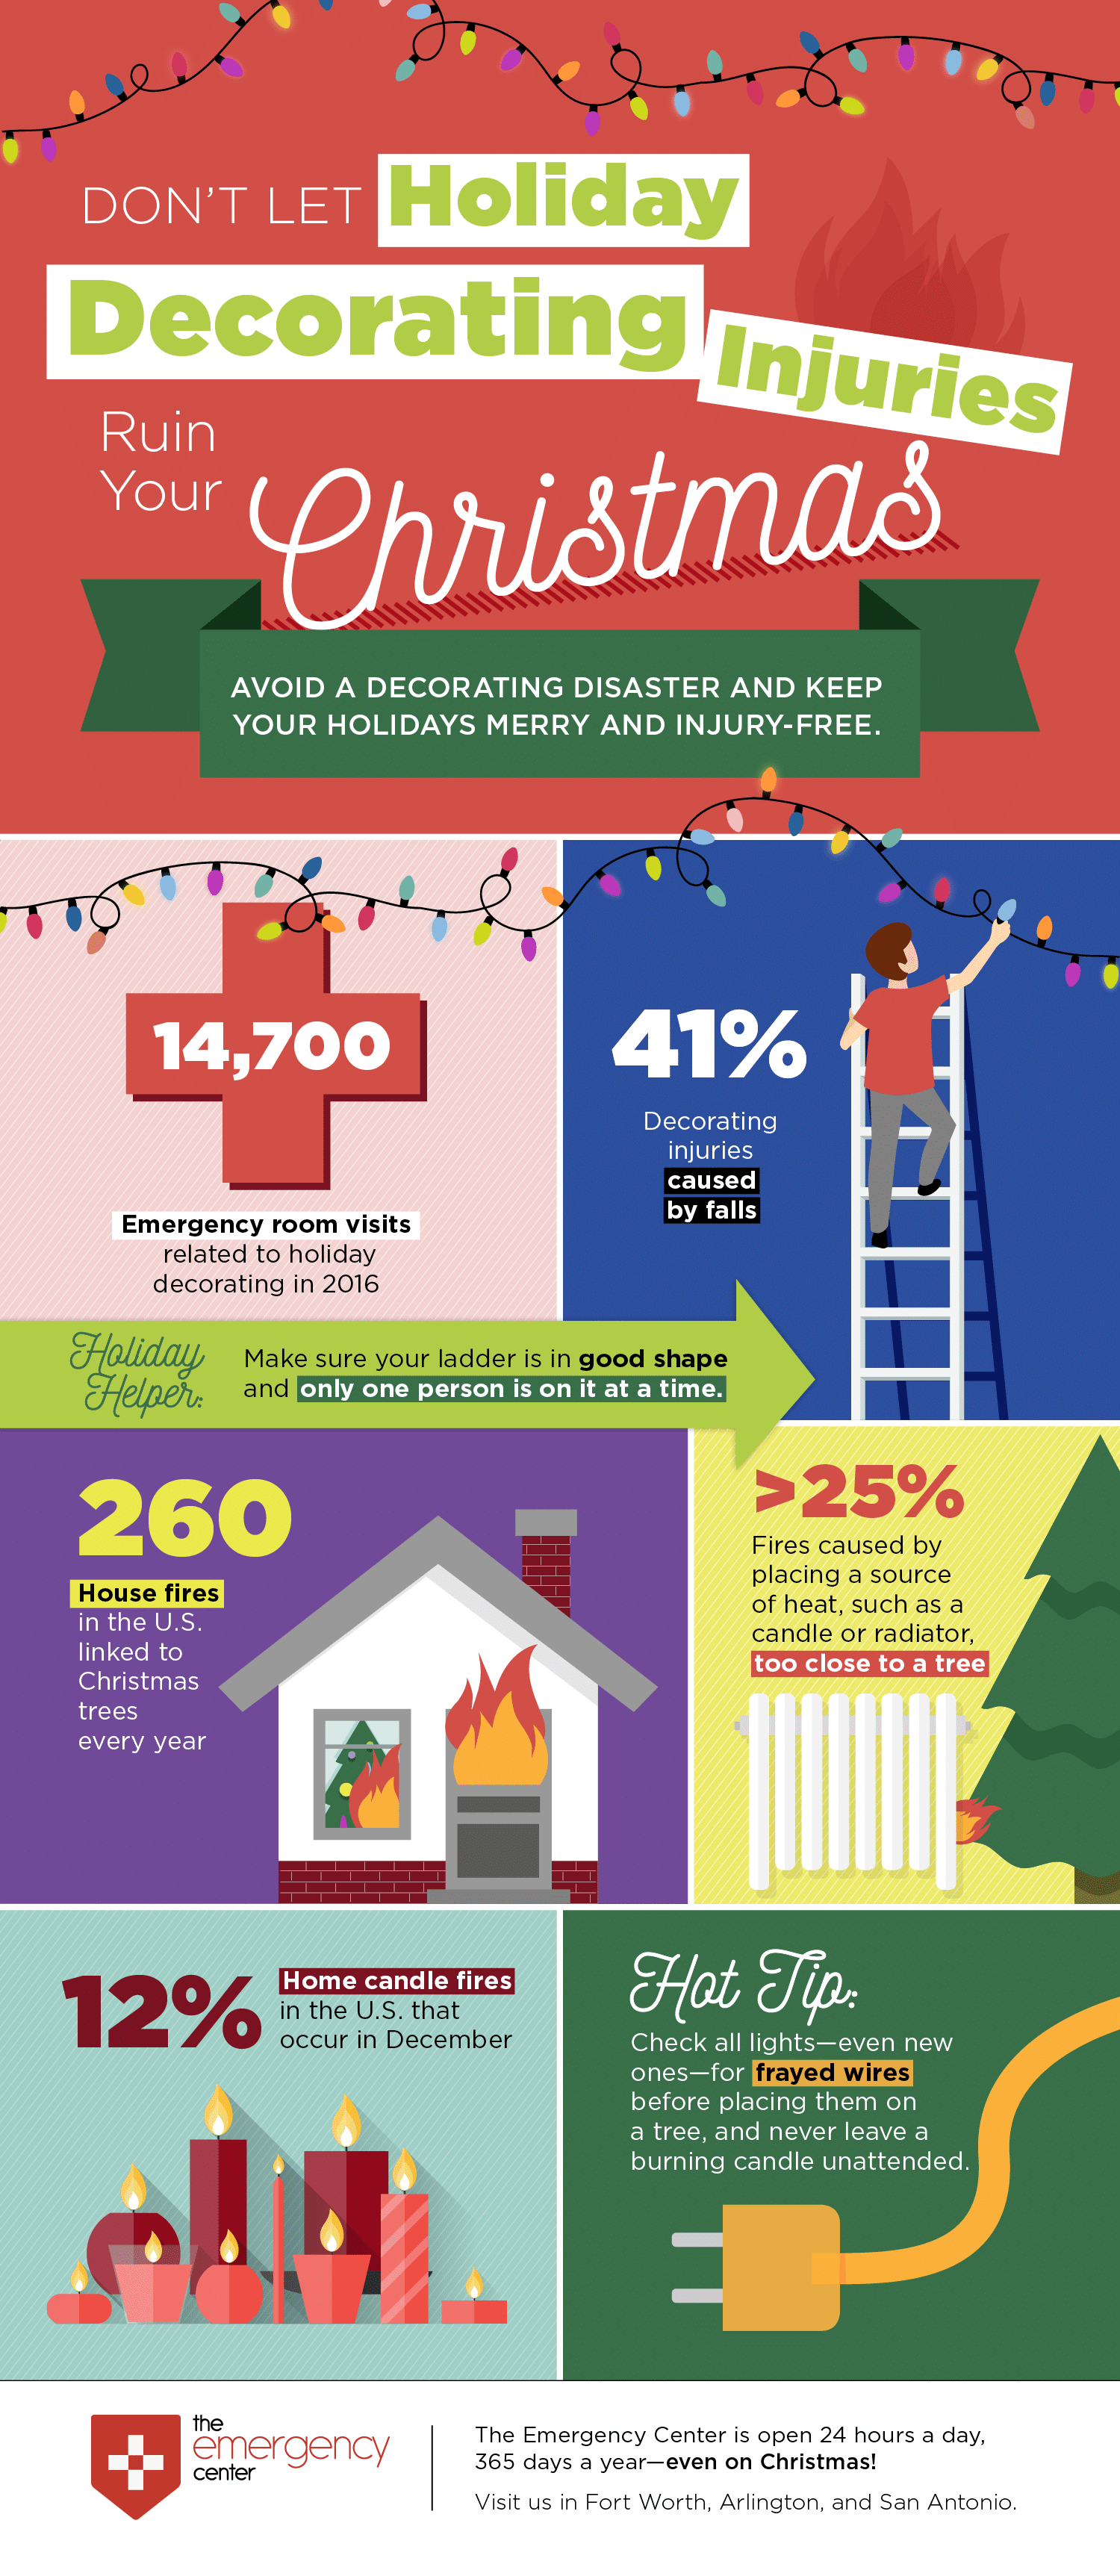 Holiday Decorating Injuries | The Emergency Center